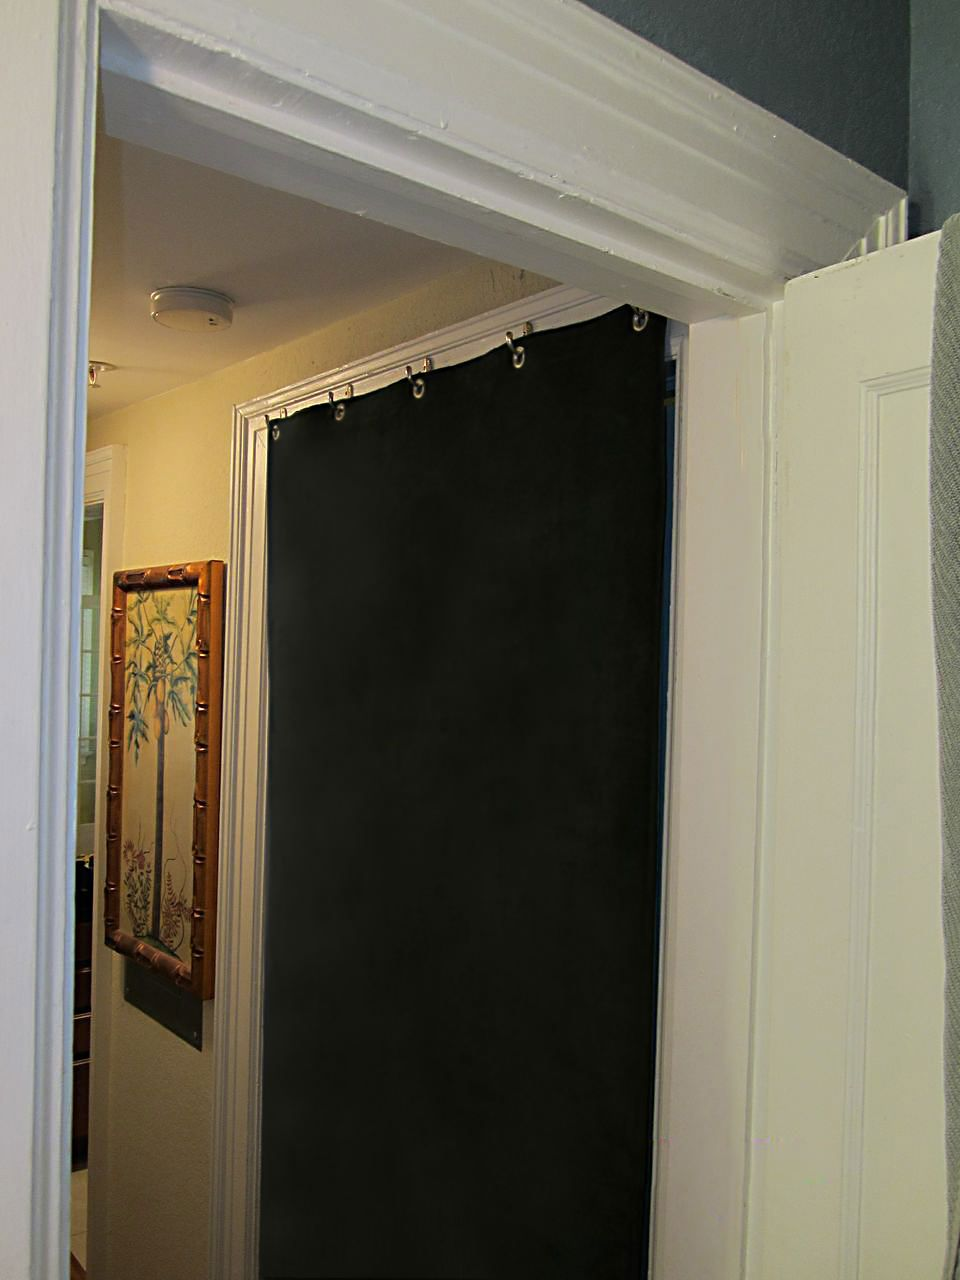 The Acoustidoor Residential Acoustics Sound Proofing Door Sound Proofing Home